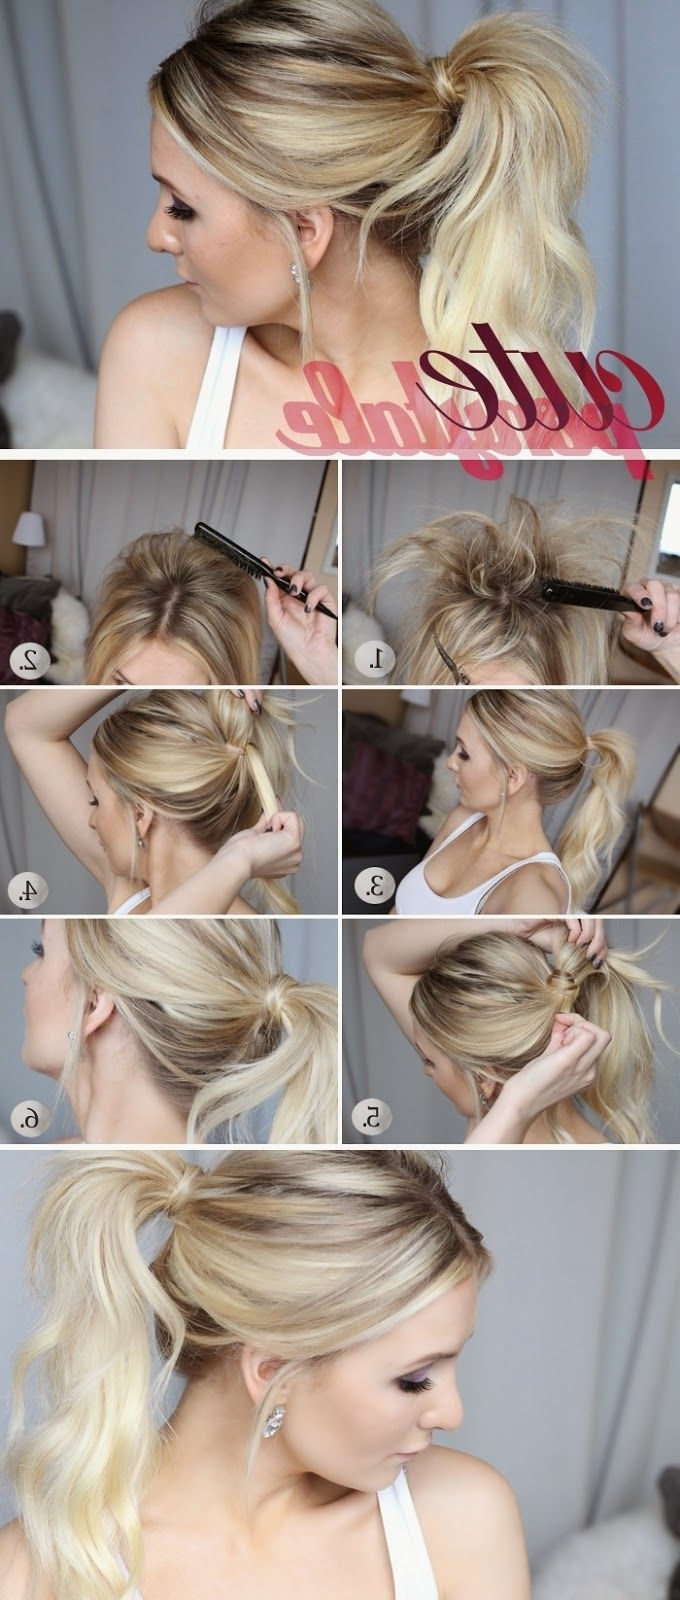 10 Quick And Simple Ponytail Tutorials For Fall (View 5 of 20)